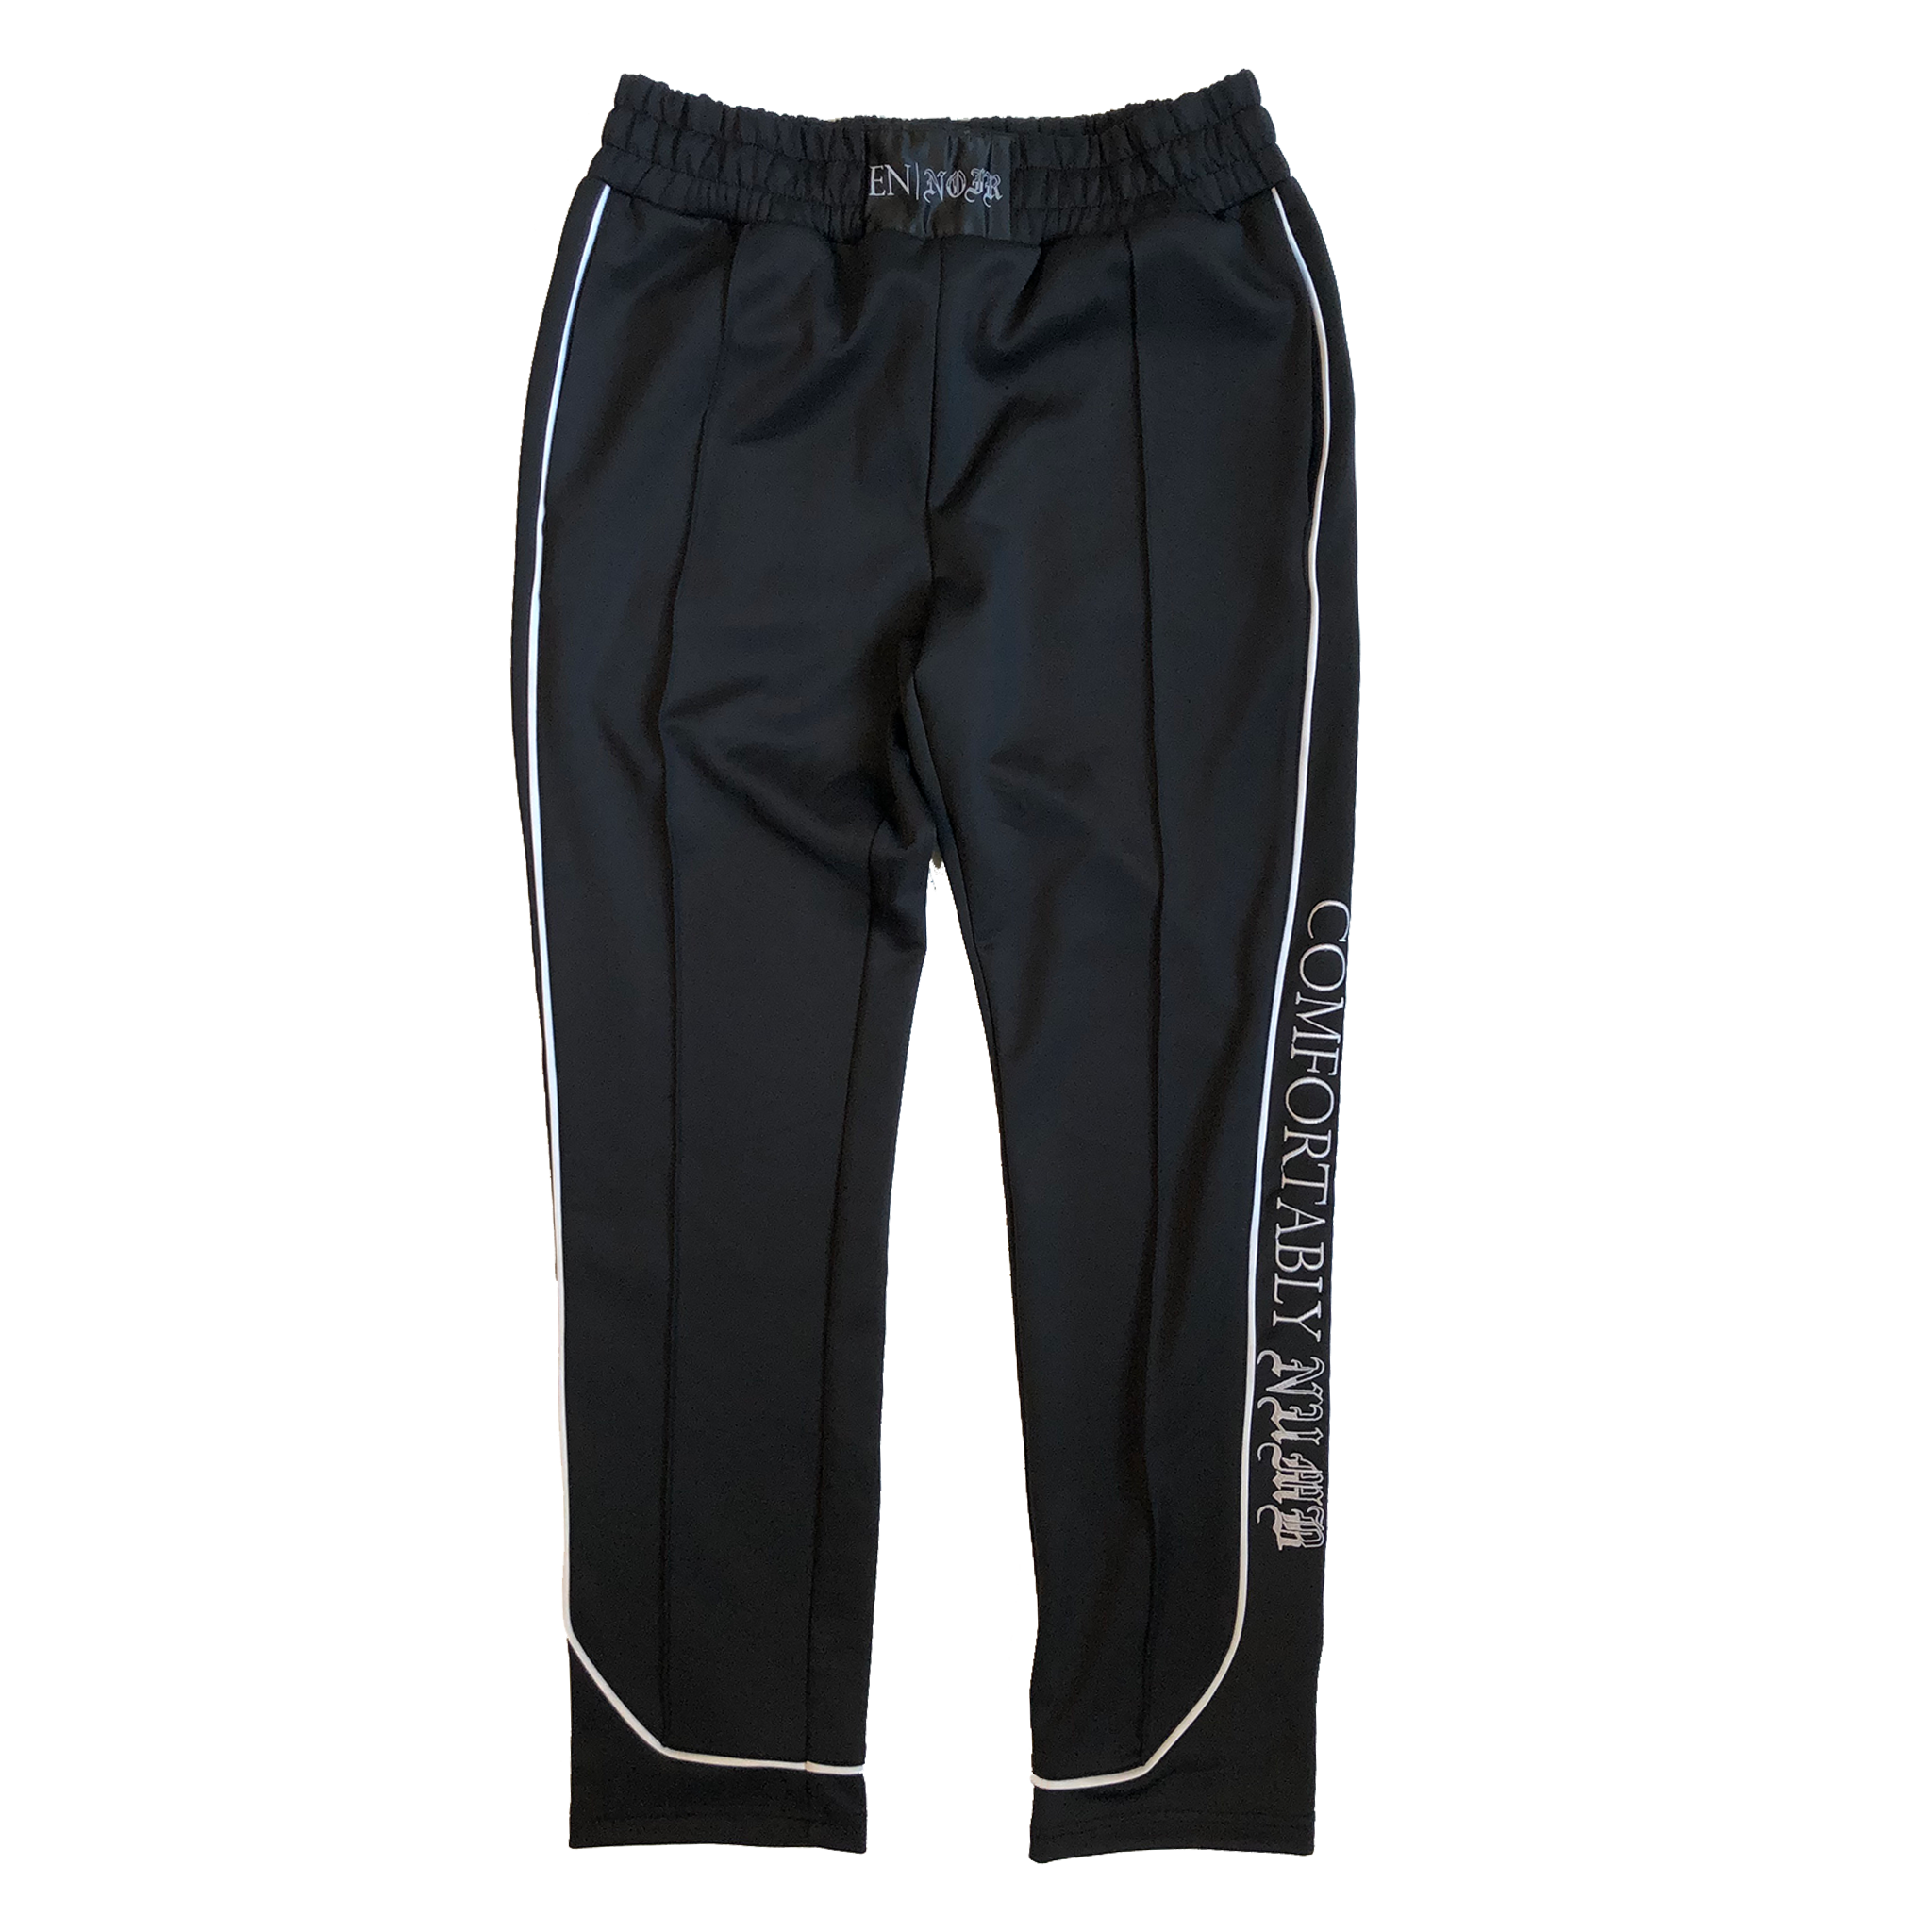 En Noir (MANSON) Comfortably Numb Training Pant - Black